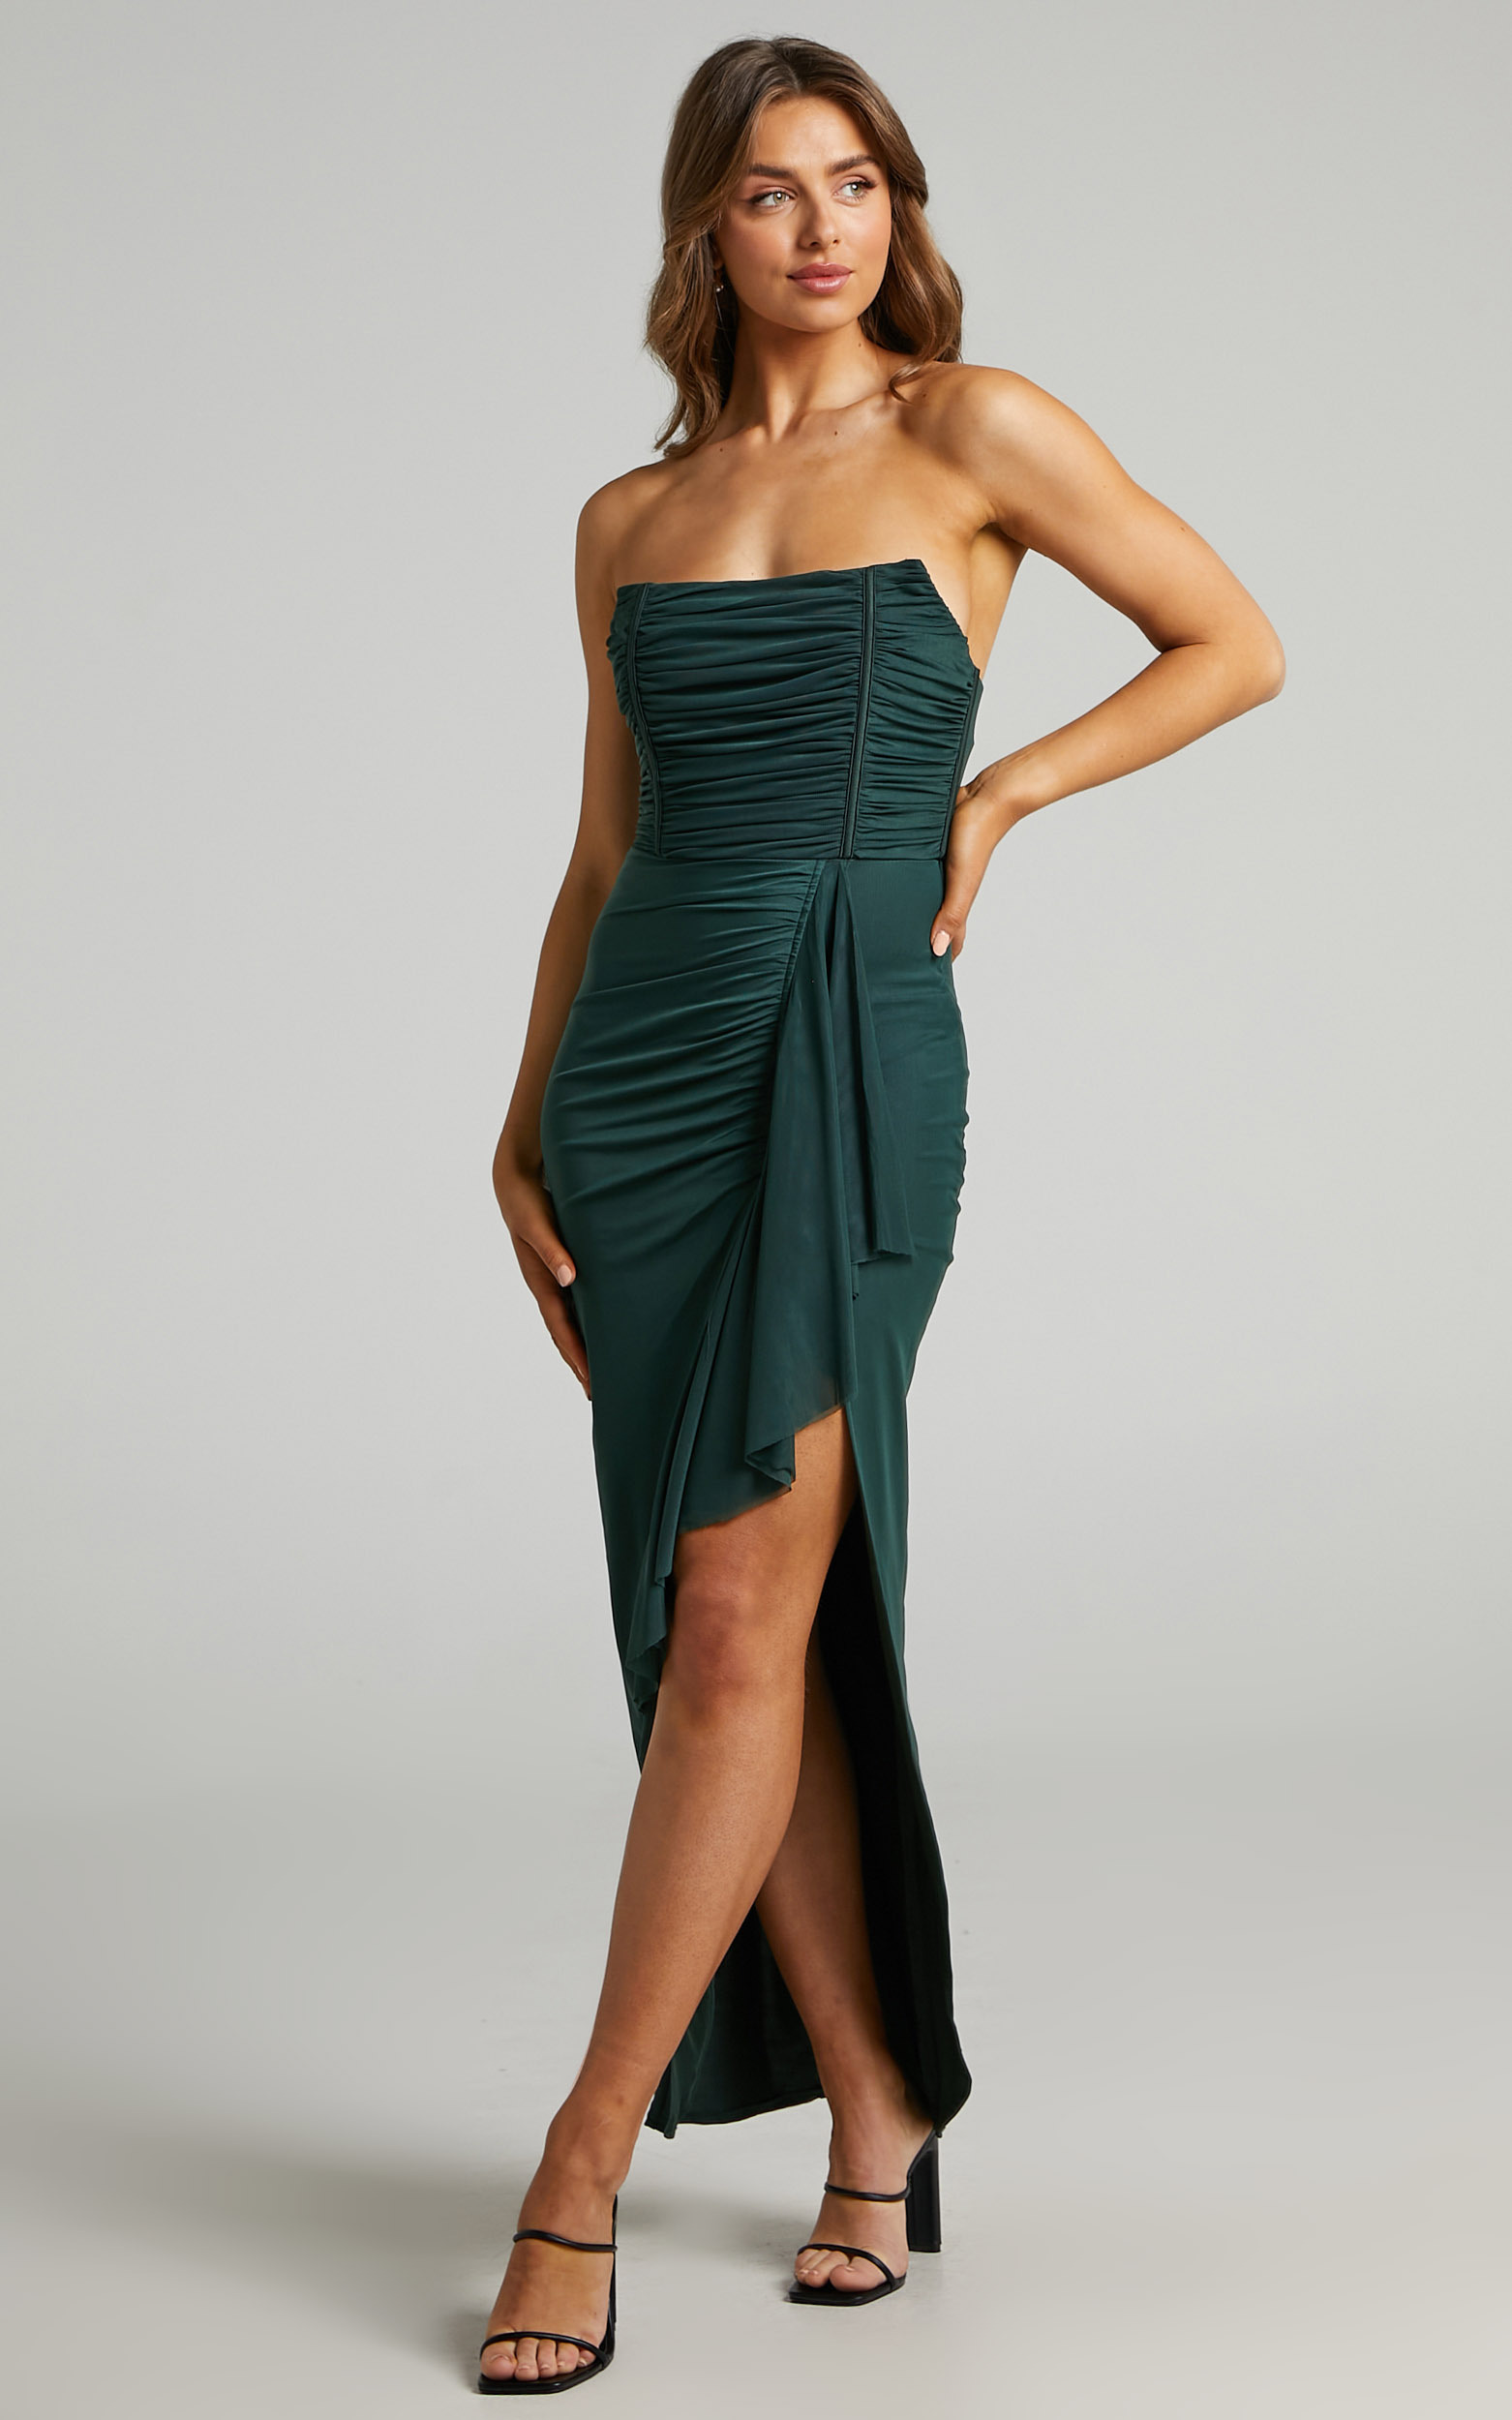 Nora Corset Detailing Dress in Emerald - 04, GRN1, hi-res image number null